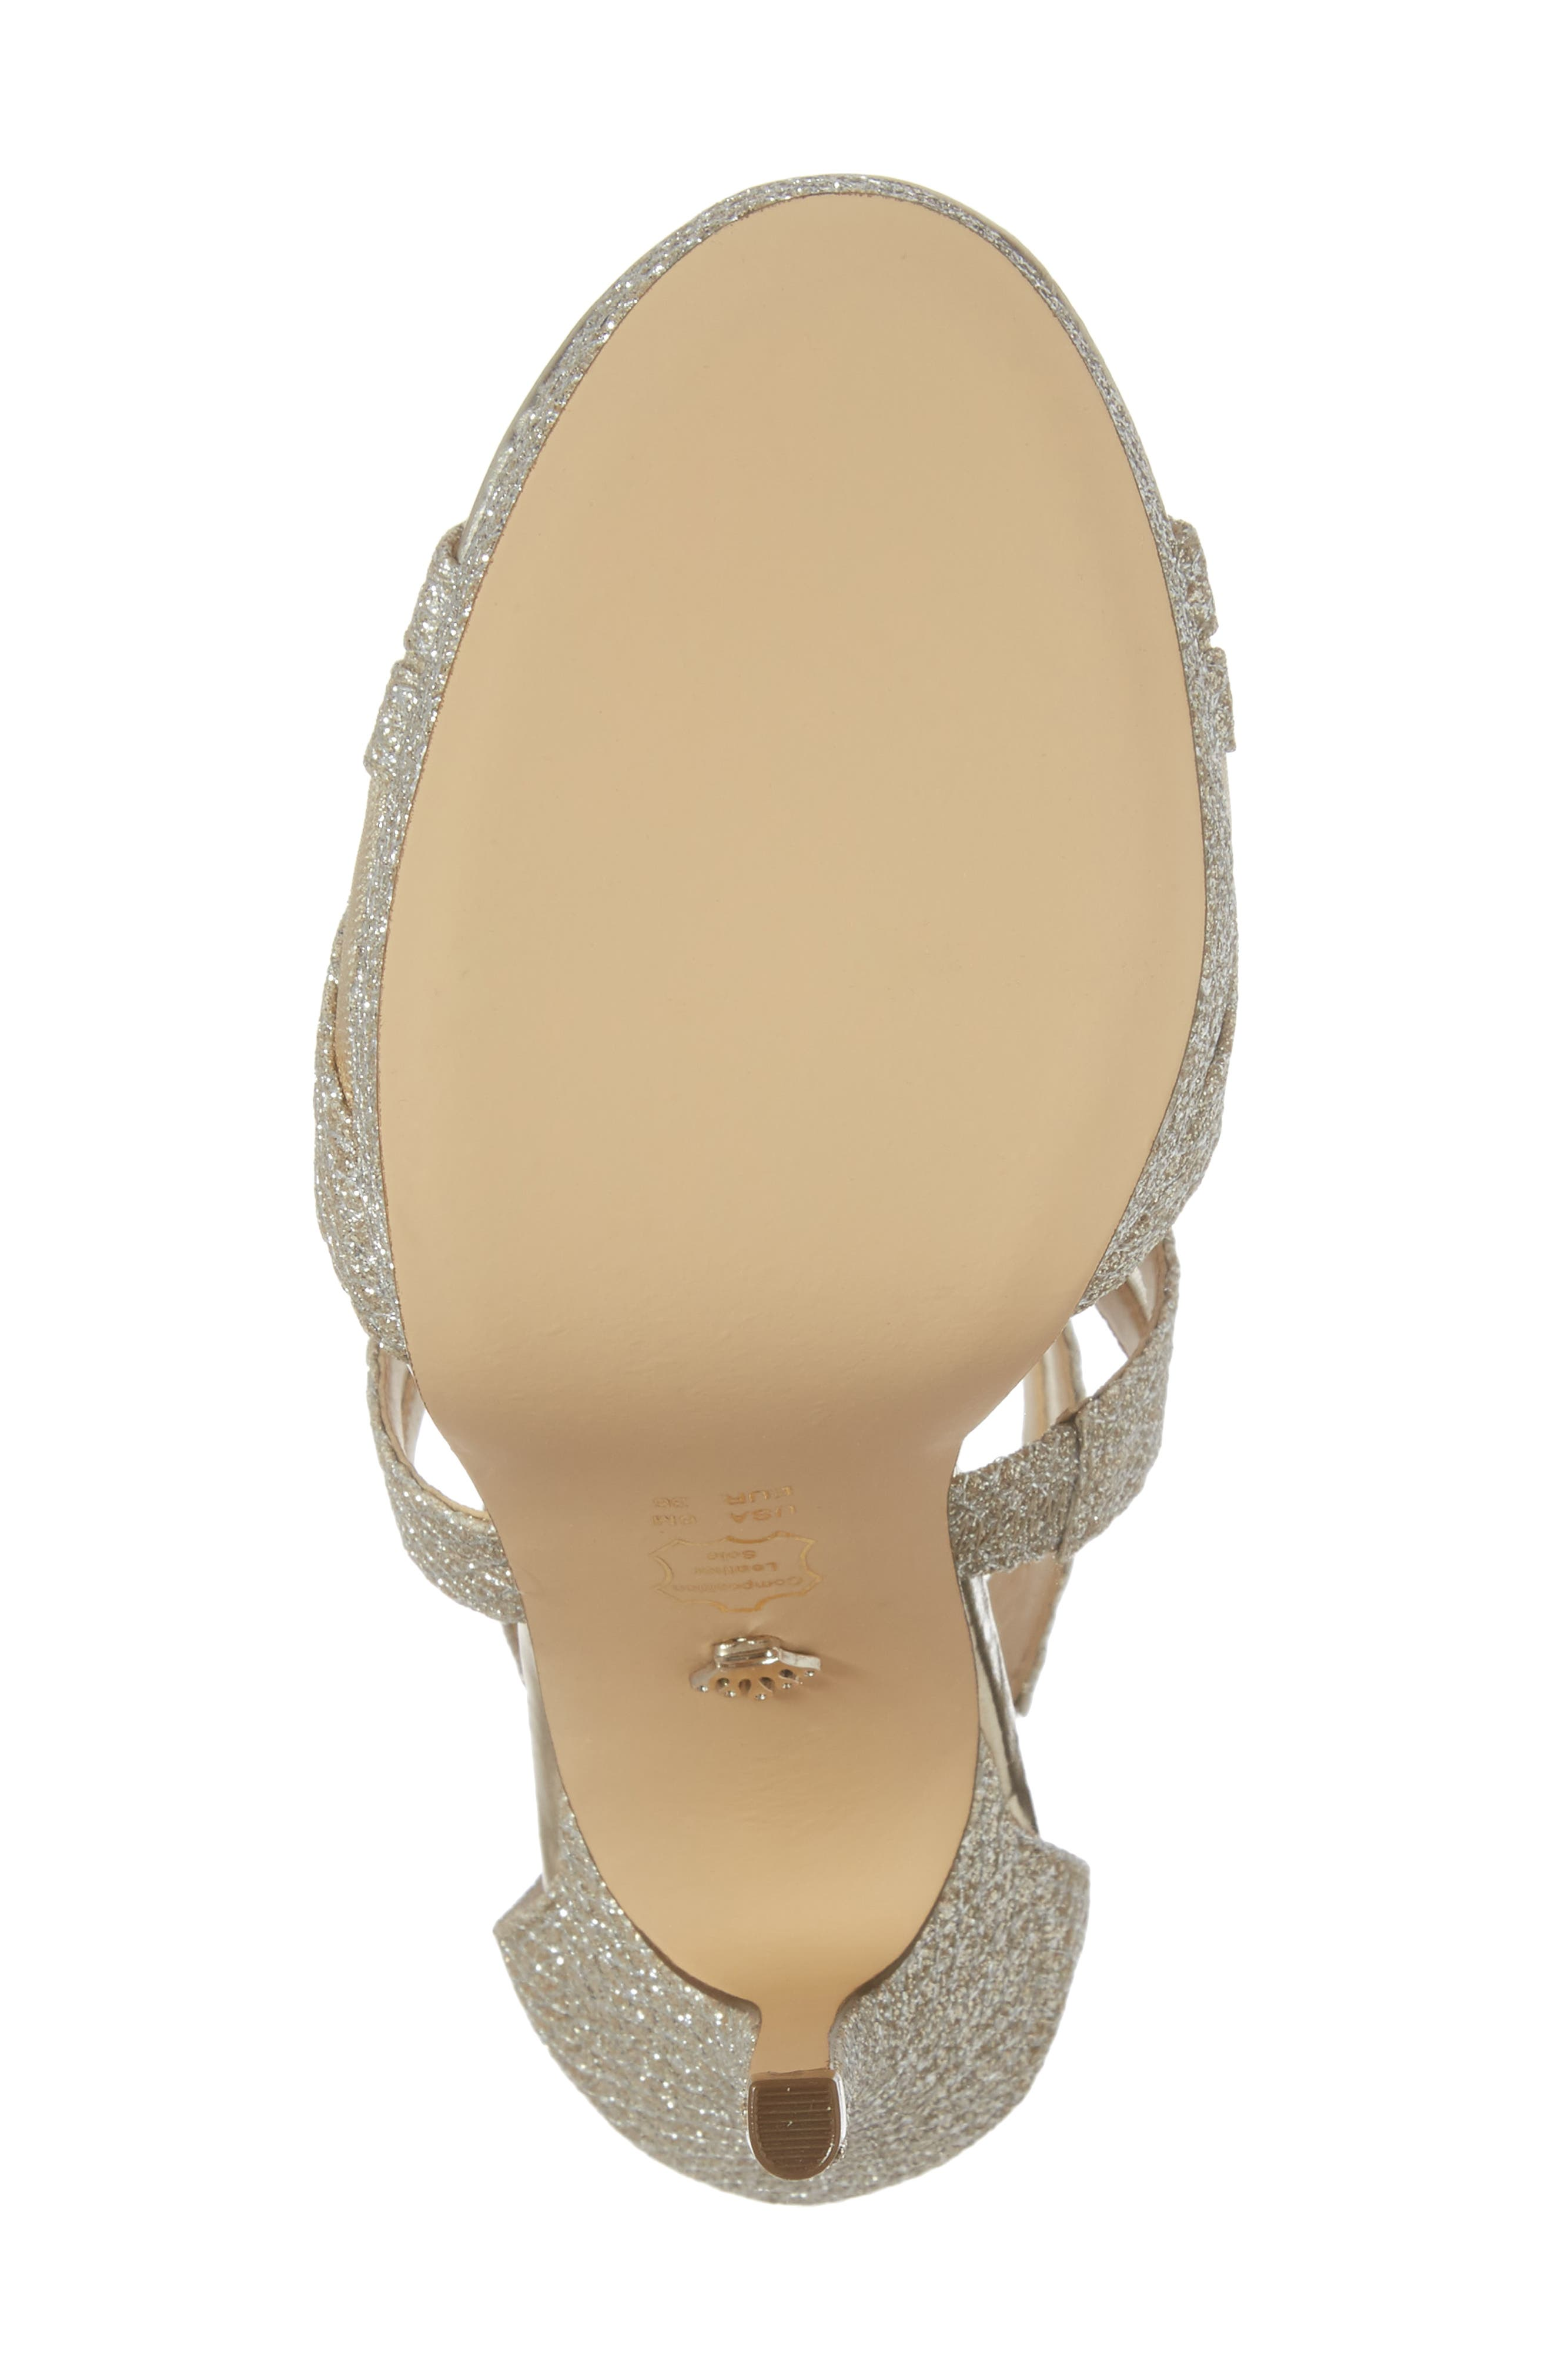 Fayette Strappy Sandal,                             Alternate thumbnail 6, color,                             Metallic Gold